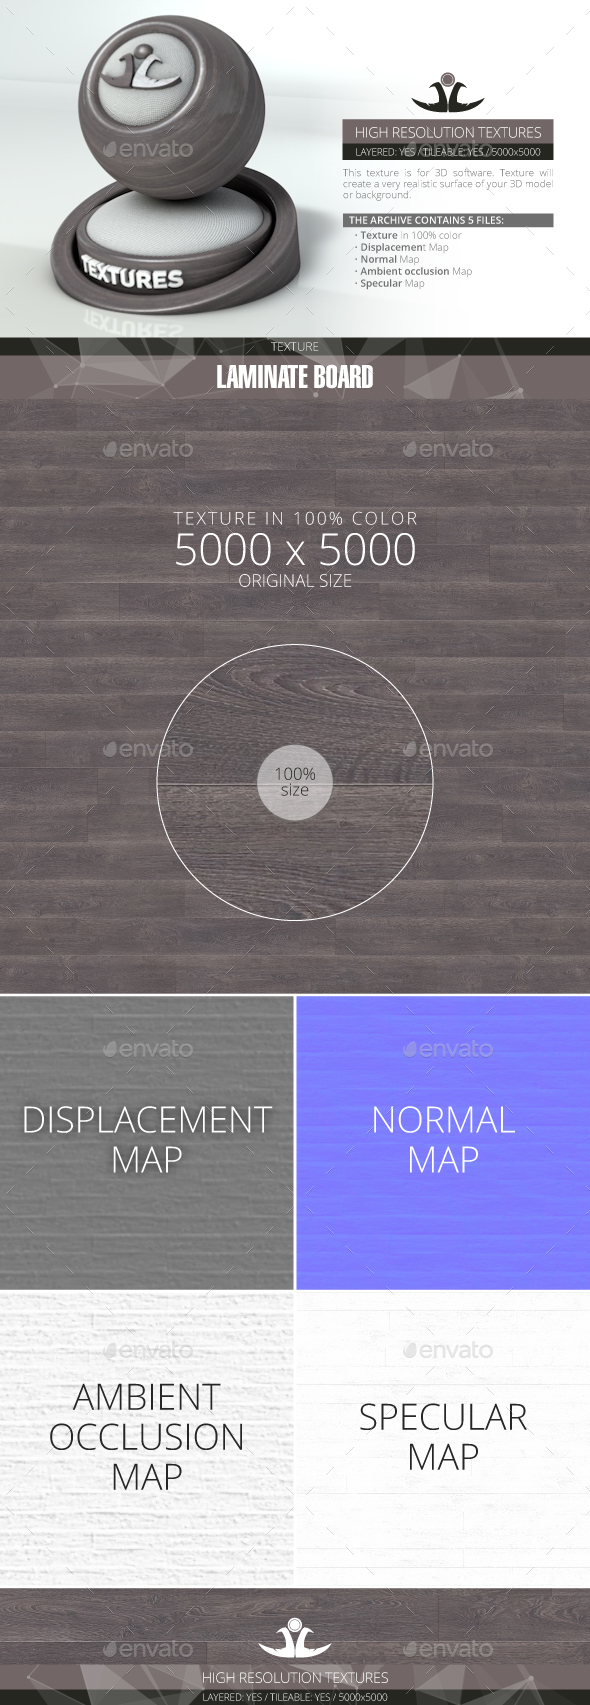 Laminate Board 37 - 3DOcean Item for Sale